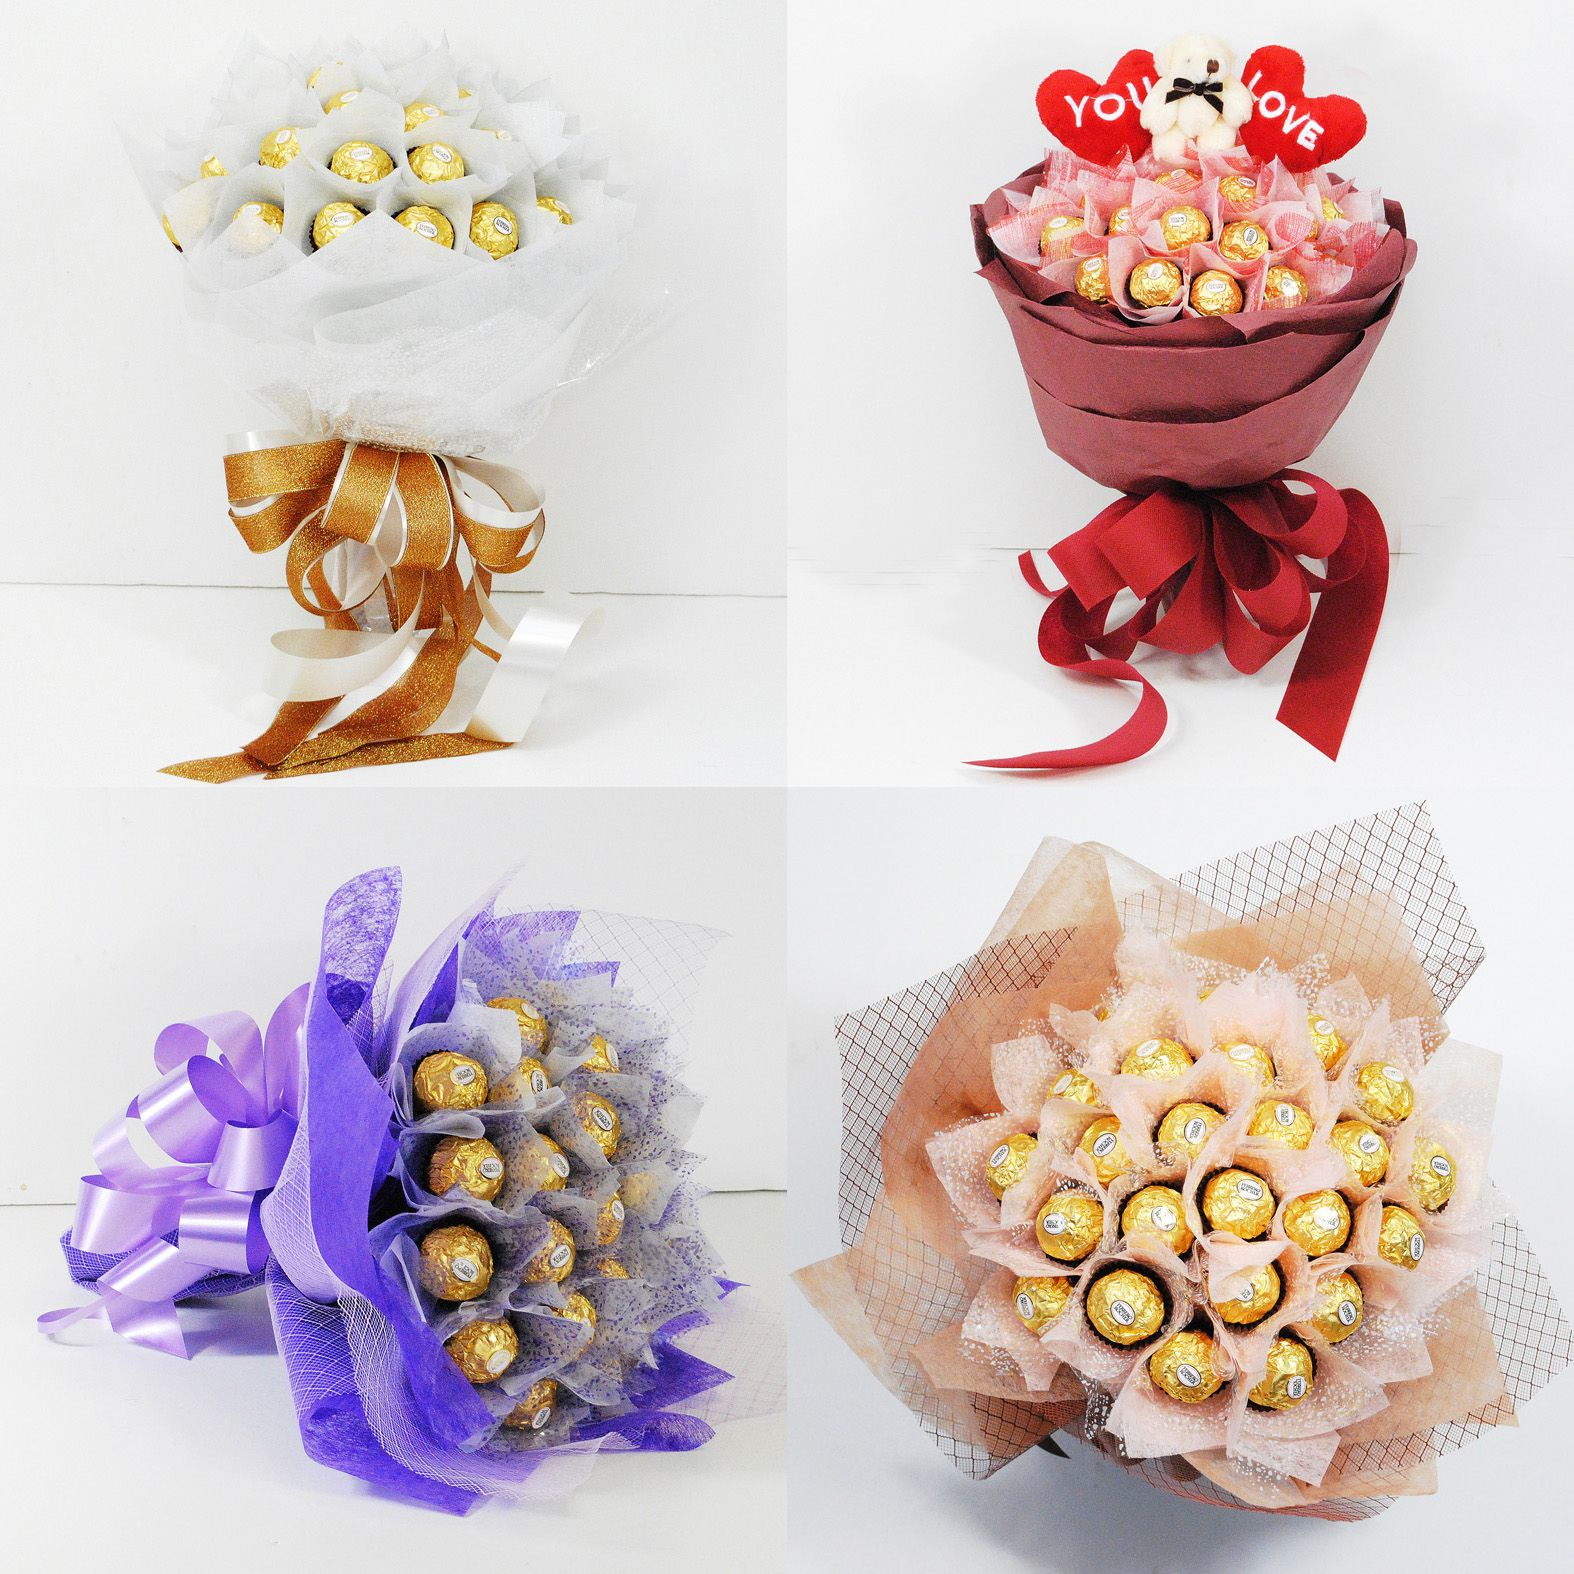 Bouquet de ferrero rochervanuska fererro rocher flower bouquet bouquet de ferrero rochervanuska chocolate crafts chocolate favors how to wrap flowers izmirmasajfo